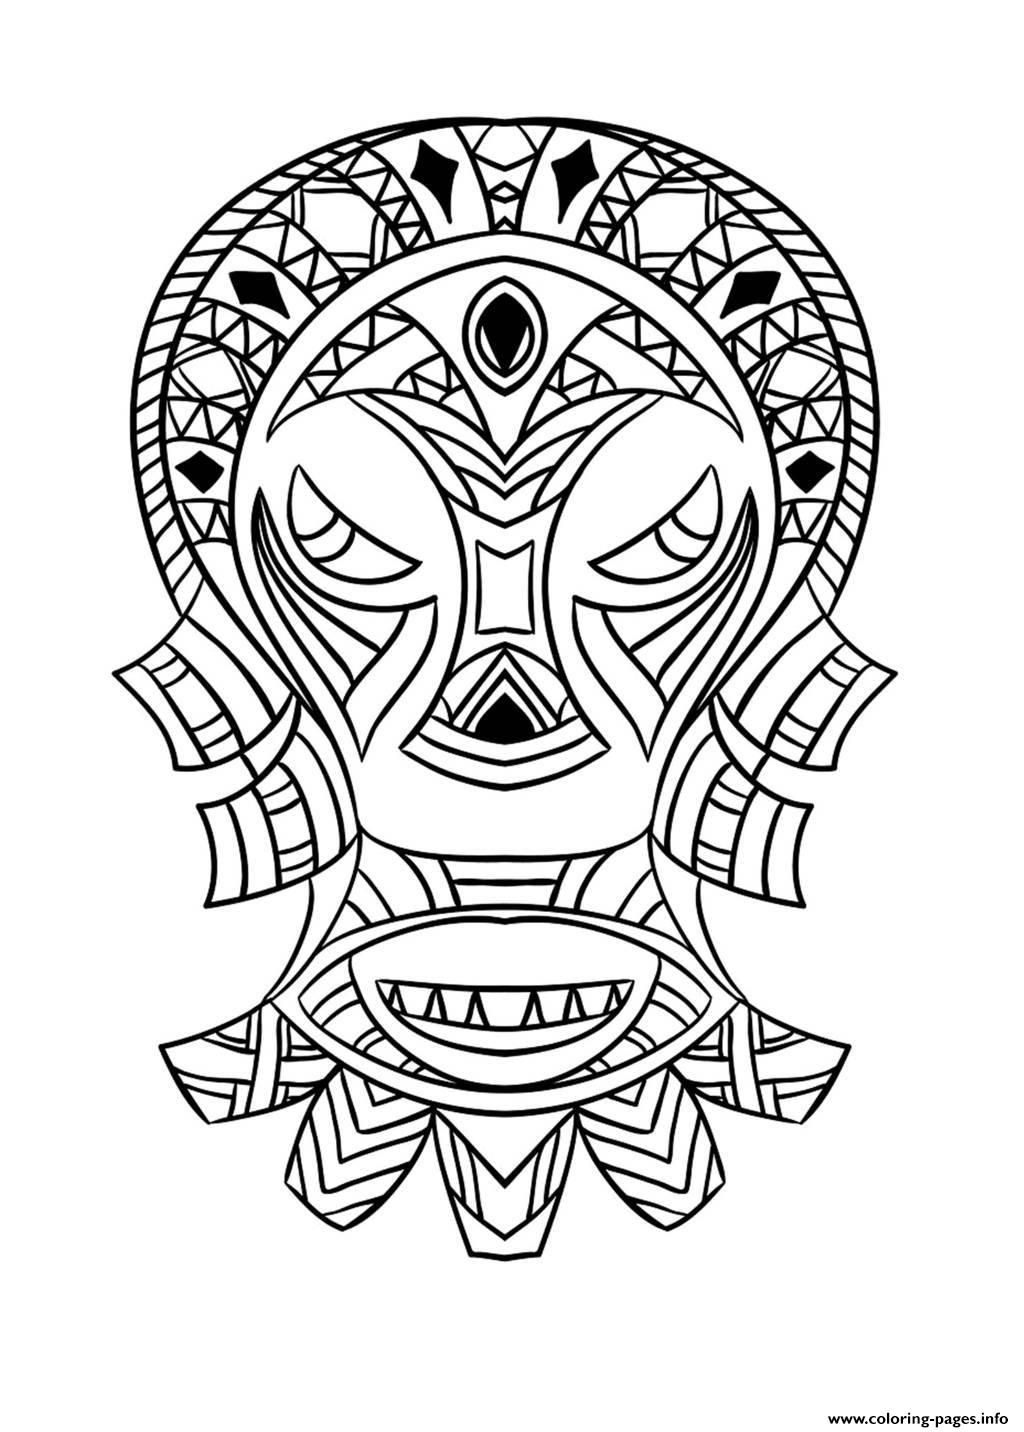 Coloring pages info - Http Www Coloring Pages Info Images Ccovers